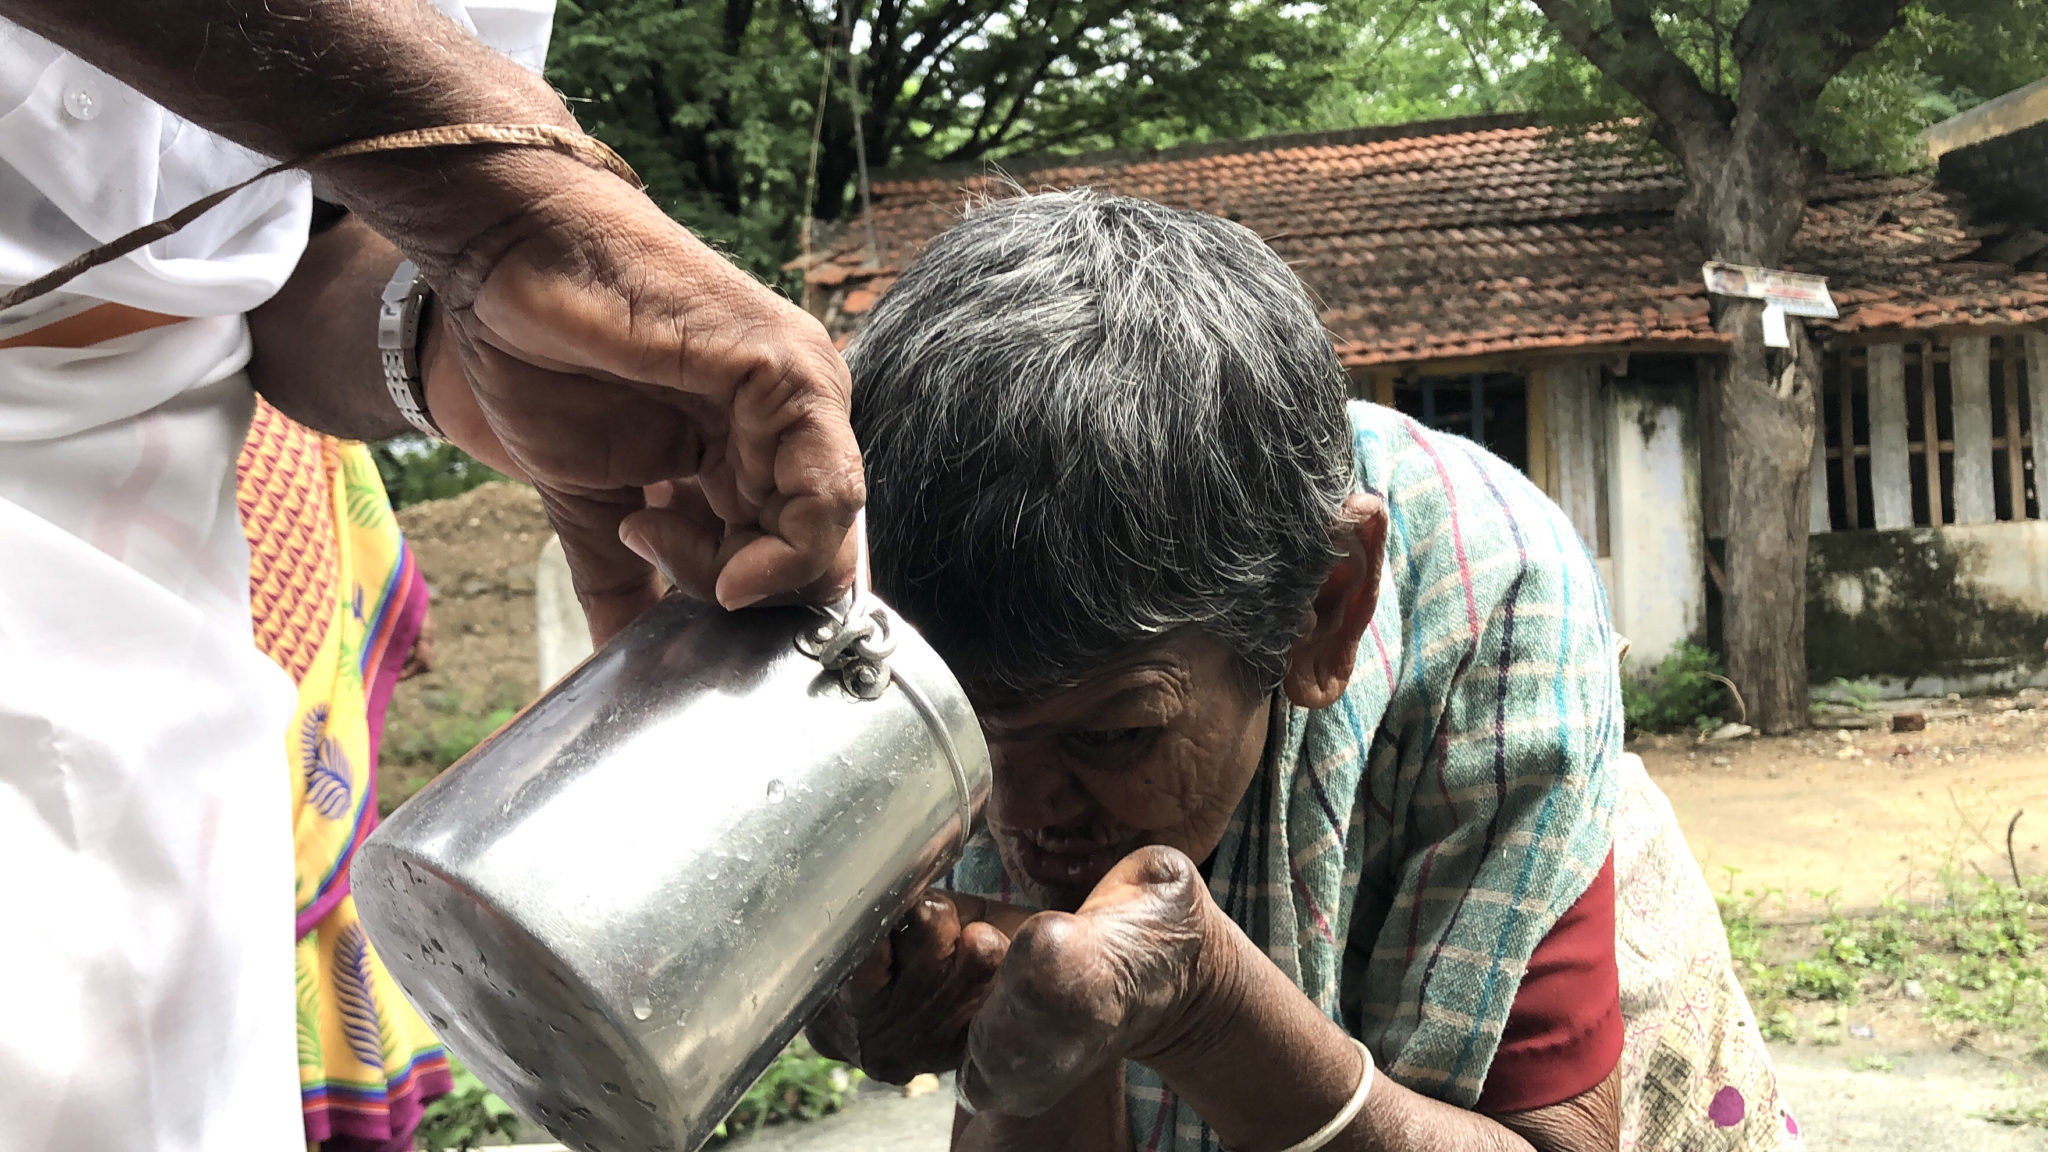 An elderly woman with leprosy drinks water from a silver bucket.